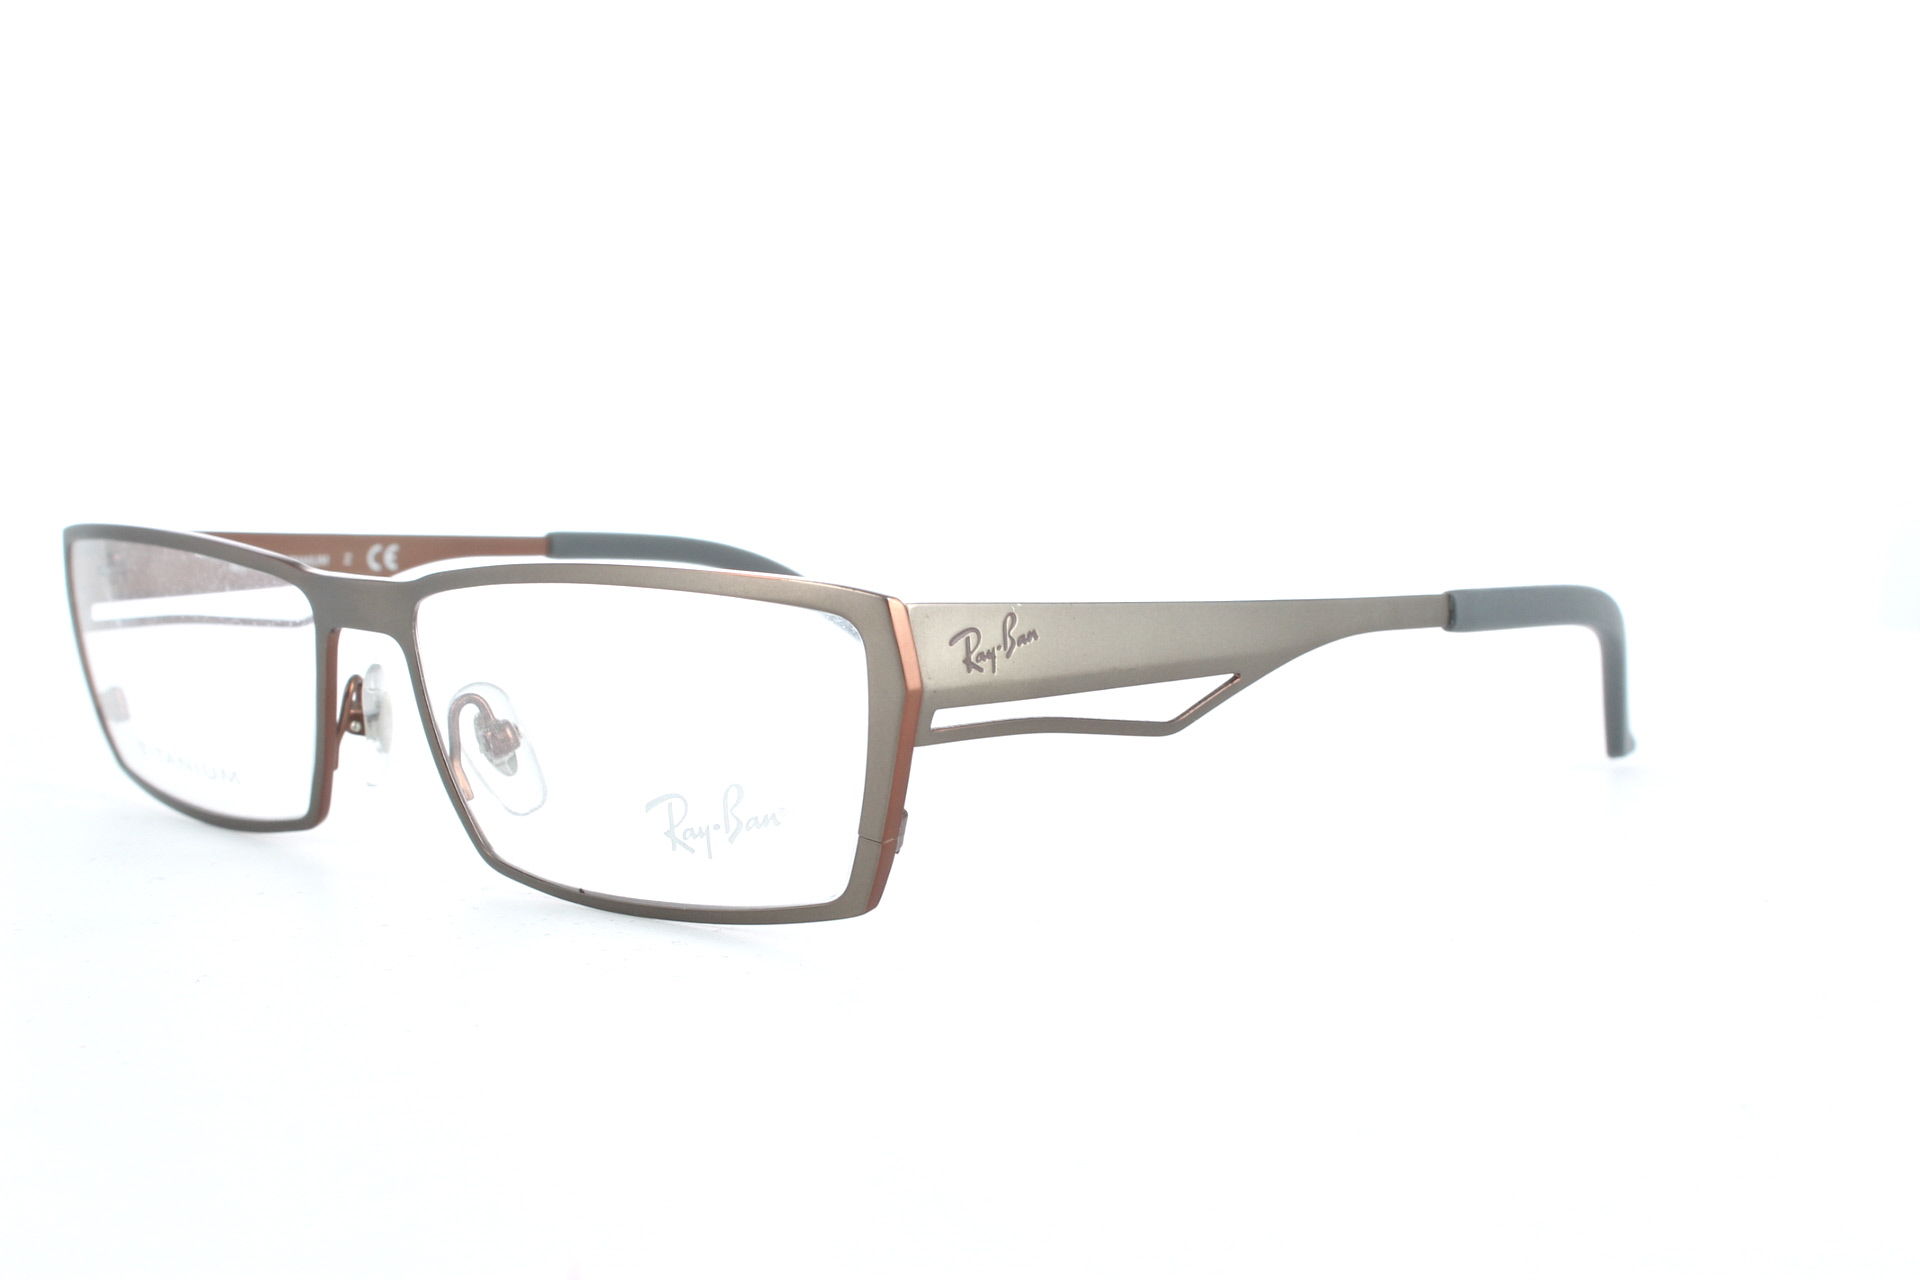 Titanium Eyeglass Frames Made In Usa : Ray Ban Titanium Glasses